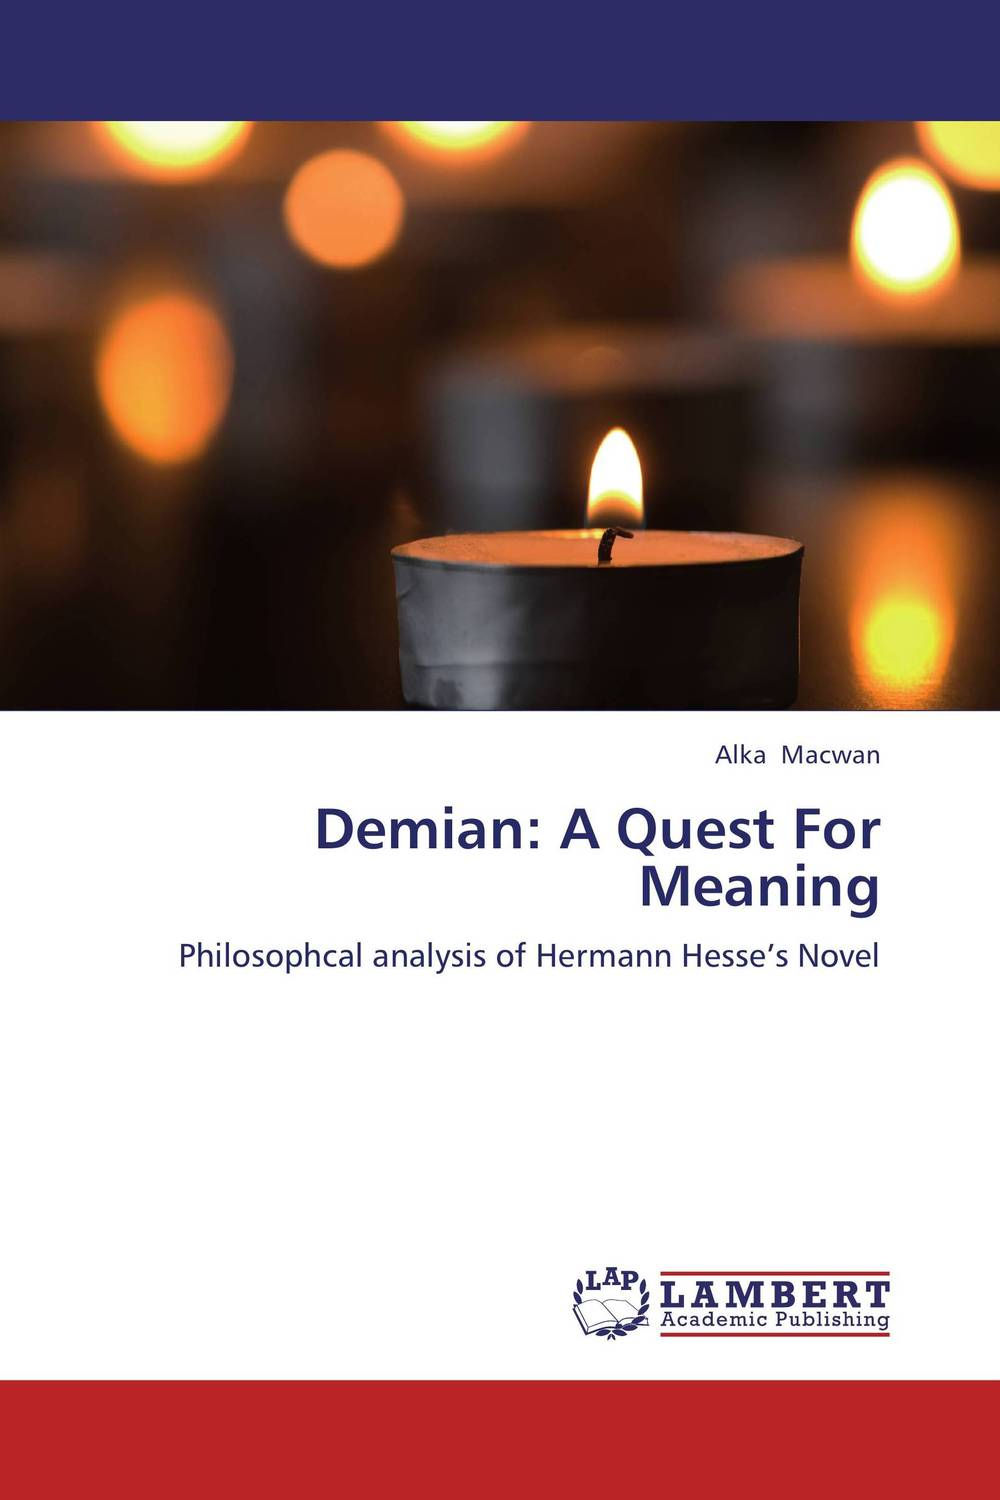 Demian: A Quest For Meaning